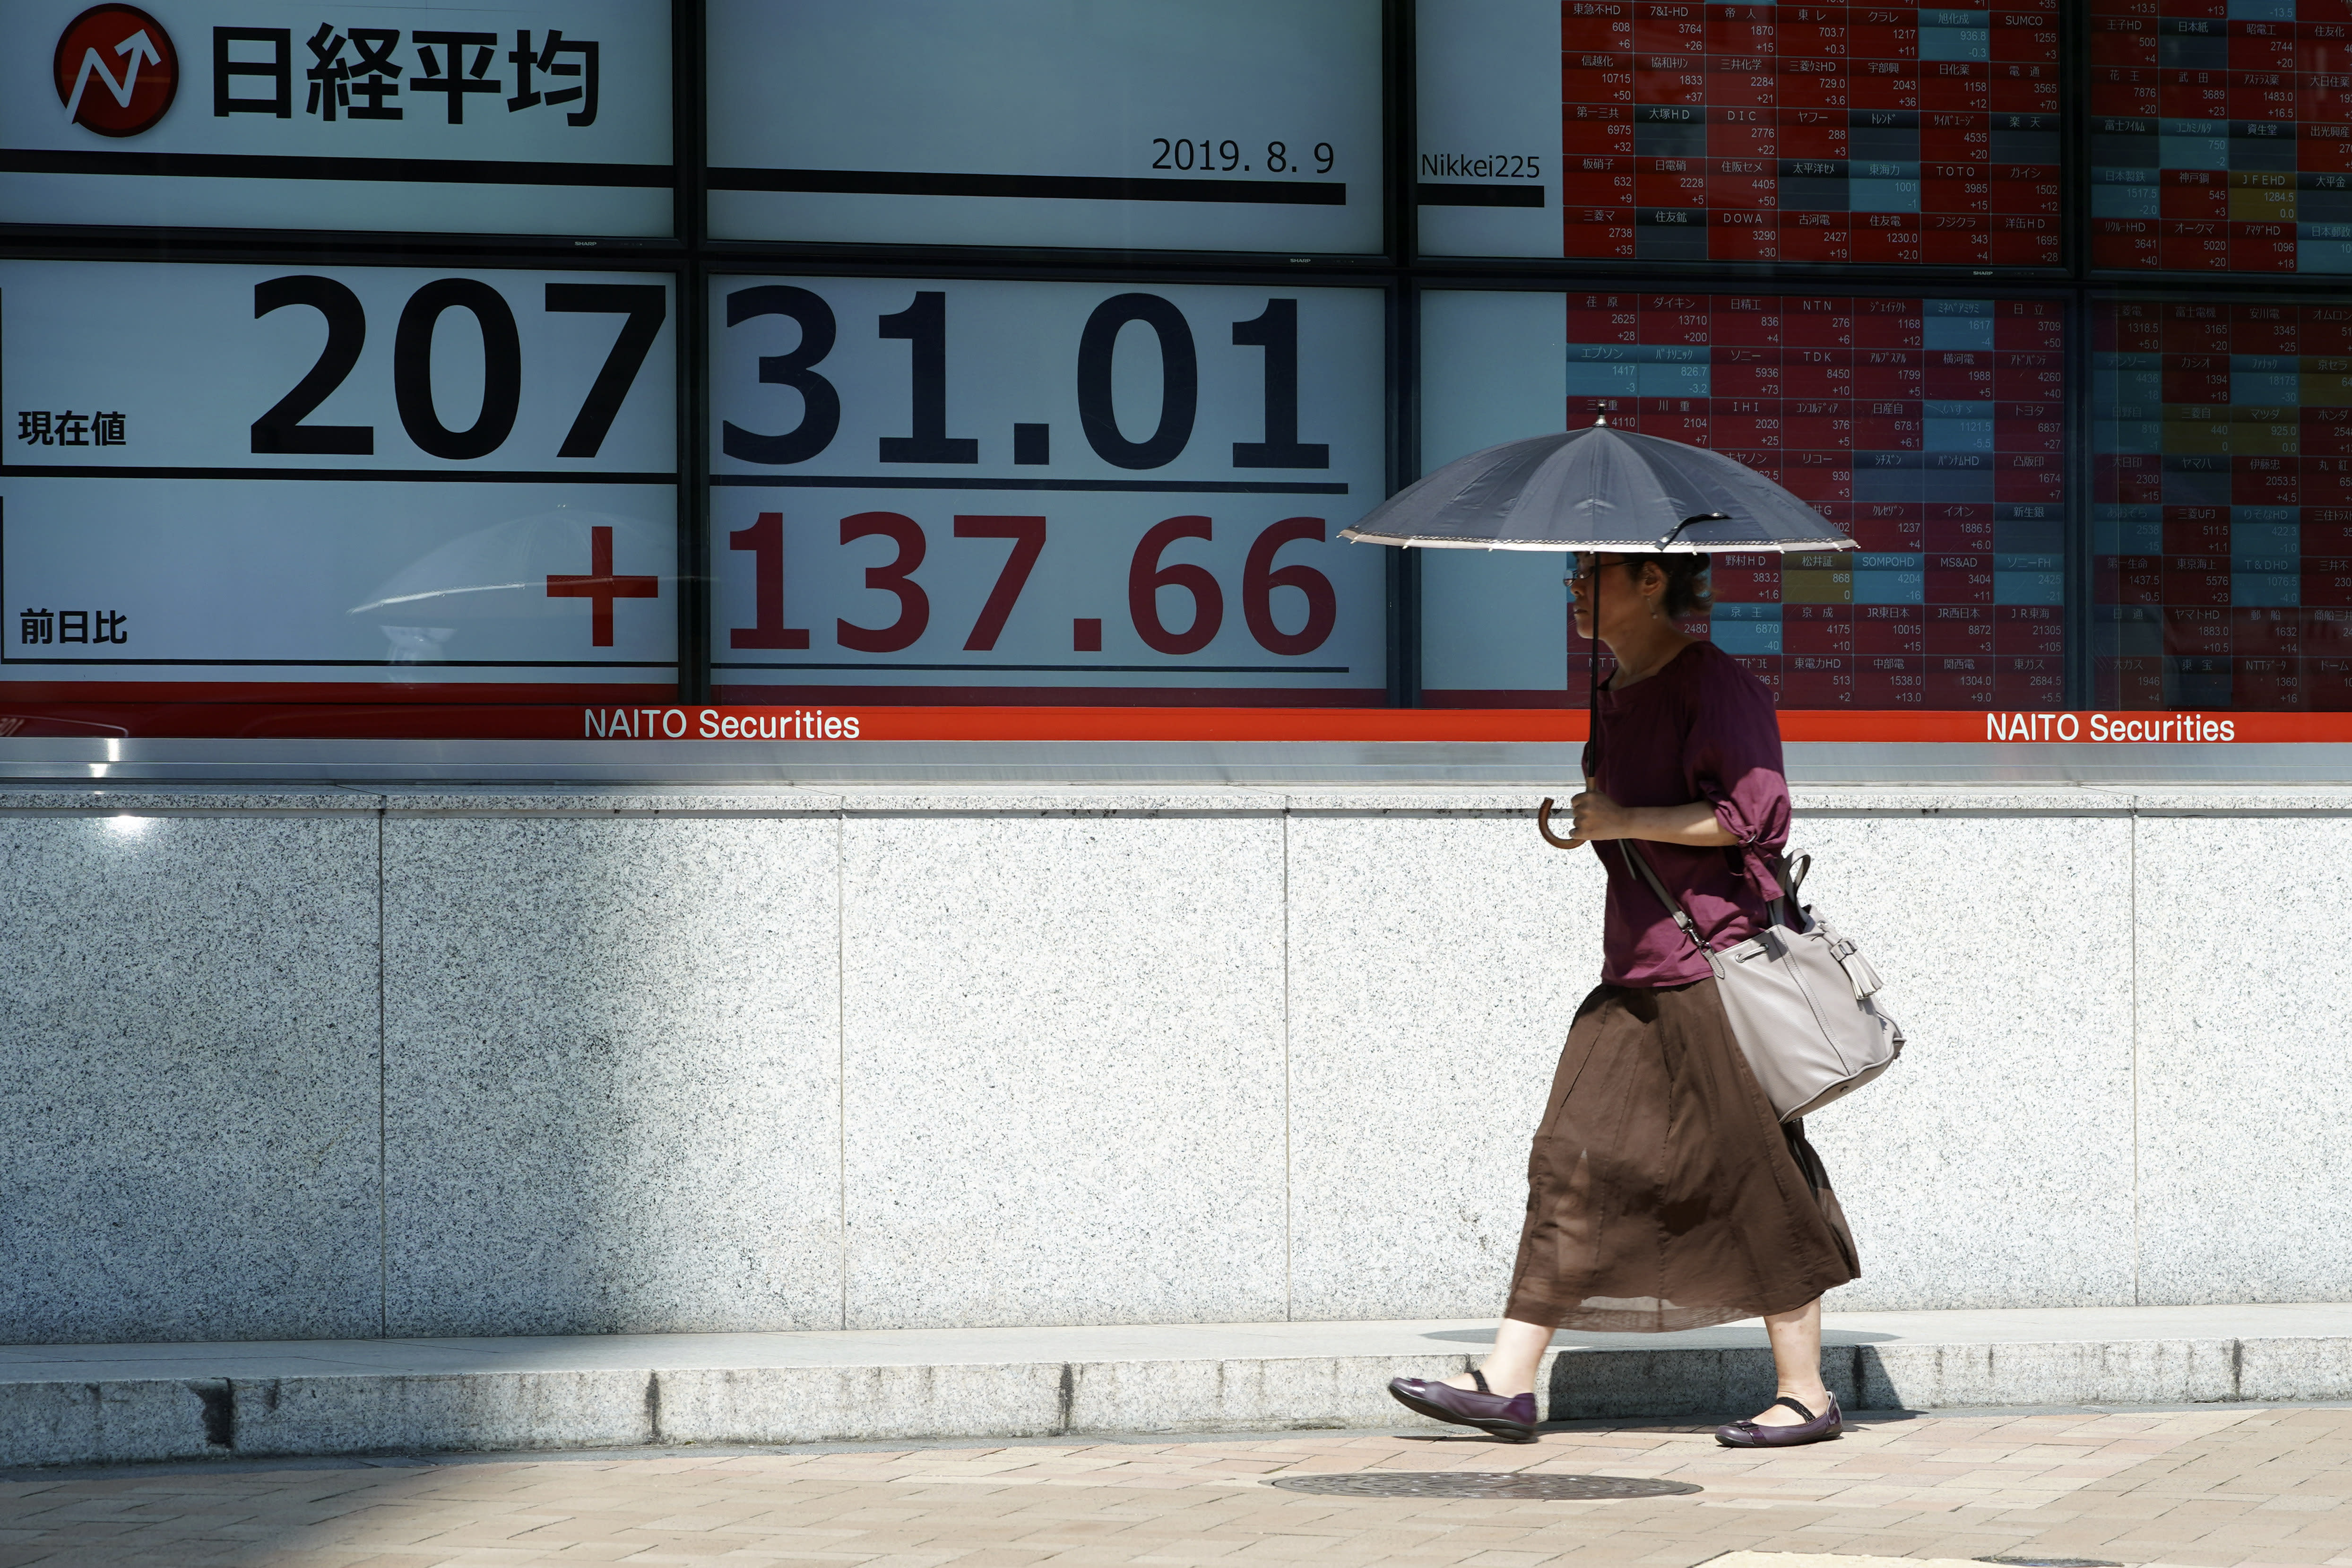 A woman walks past an electronic stock board showing Japan's Nikkei 225 index at a securities firm in Tokyo Friday, Aug. 9, 2019. Asian shares rose Friday as investors bought back stocks following gains on Wall Street, although worries about a trade dispute between the U.S. and China remained.(AP Photo/Eugene Hoshiko)